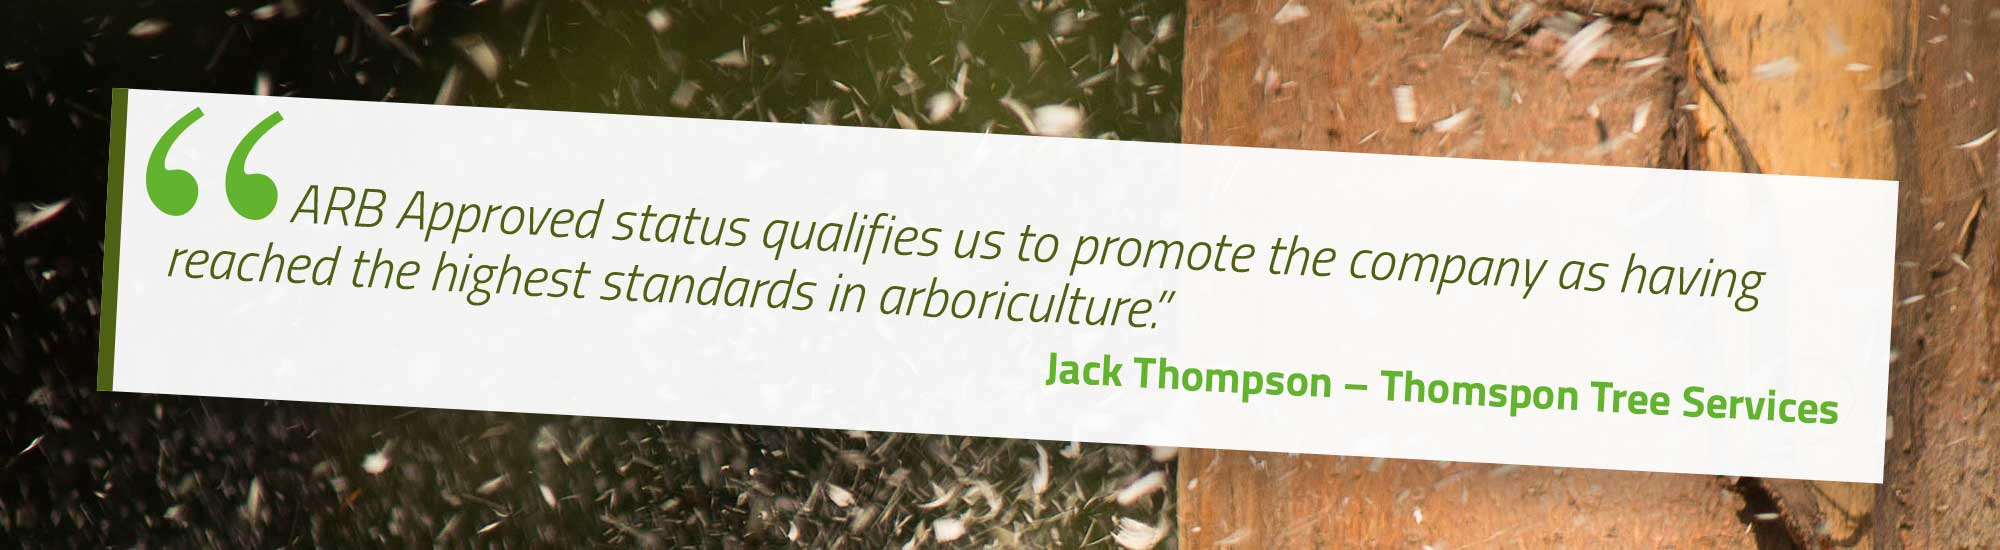 ARB Approved status qualifies us to promote the company as having reached the highest standards in arboriculture. Jack Thompson – Thomspon Tree Services